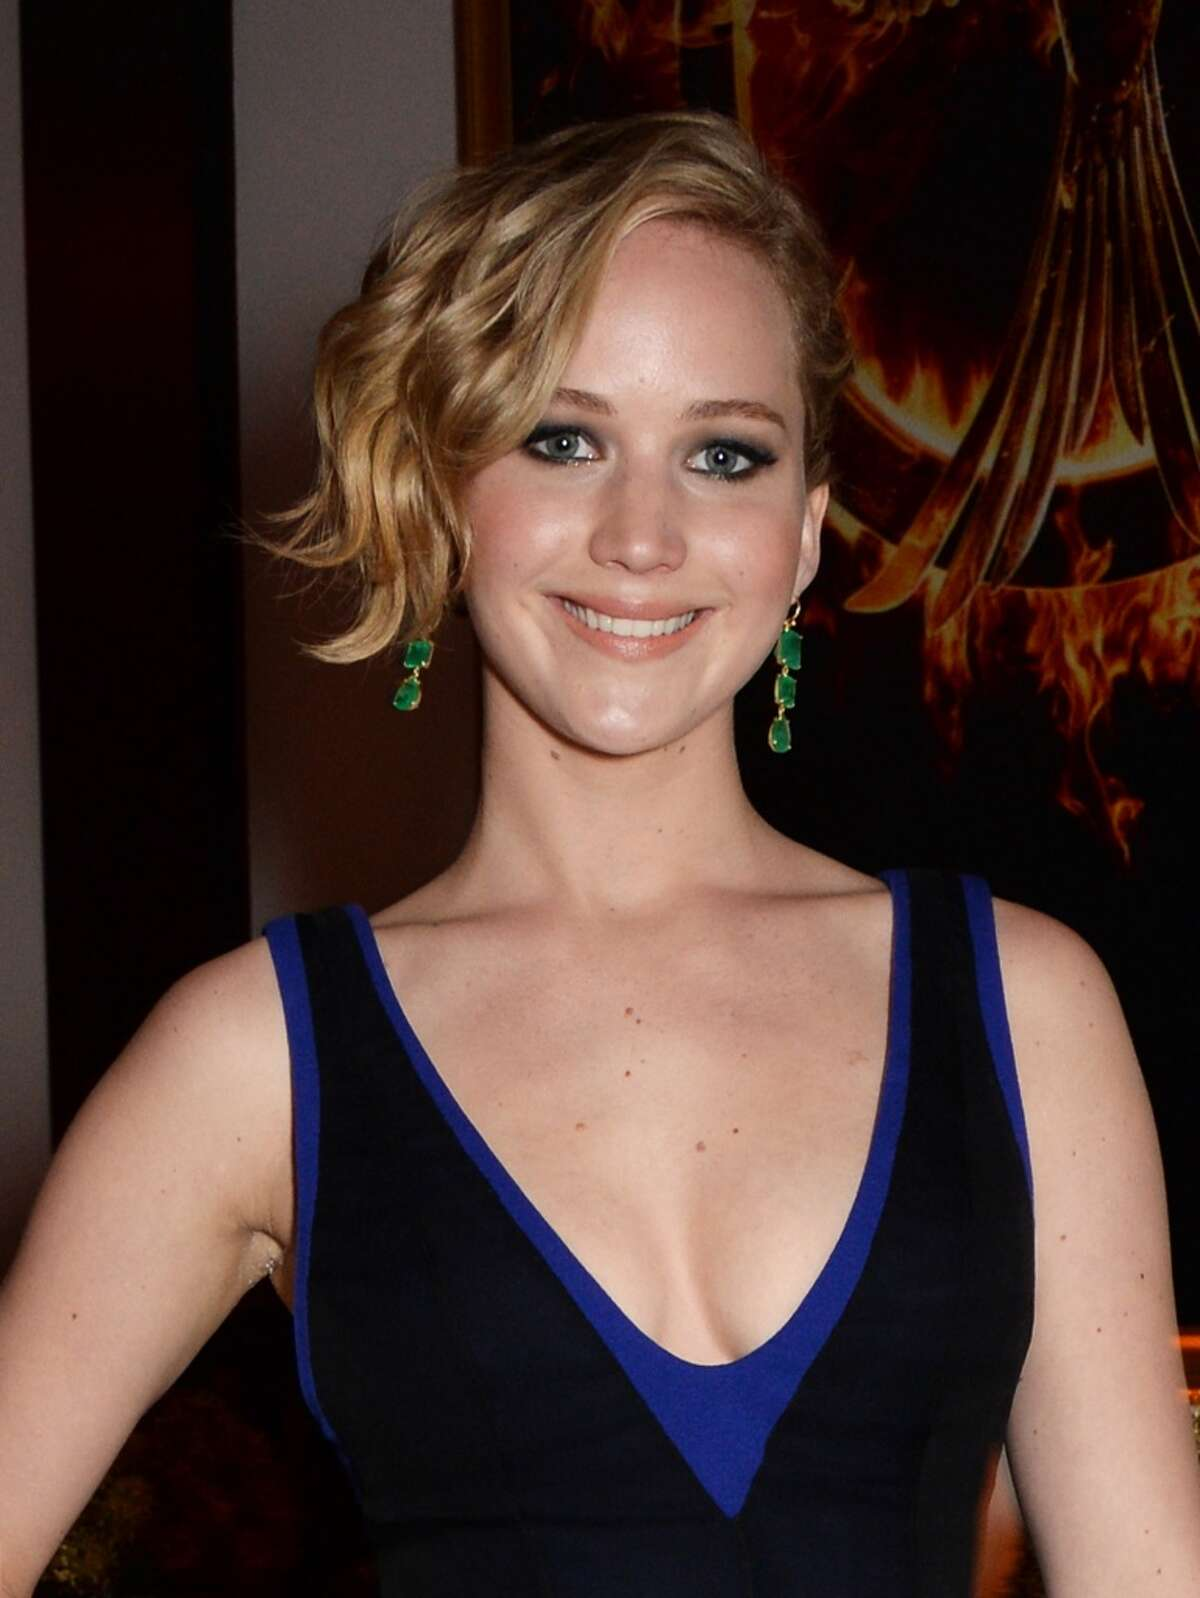 """Actress Jennifer LawrenceNote:Alleged photos were reportedly released Sunday, Sept. 21 on 4chan/Reddit. The star's spokesperson previously released a statement to Buzzfeed: """"This is a flagrant violation of privacy,"""" adding: """"The authorities have been contacted and will prosecute anyone who posts the stolen photos of Jennifer Lawrence."""""""